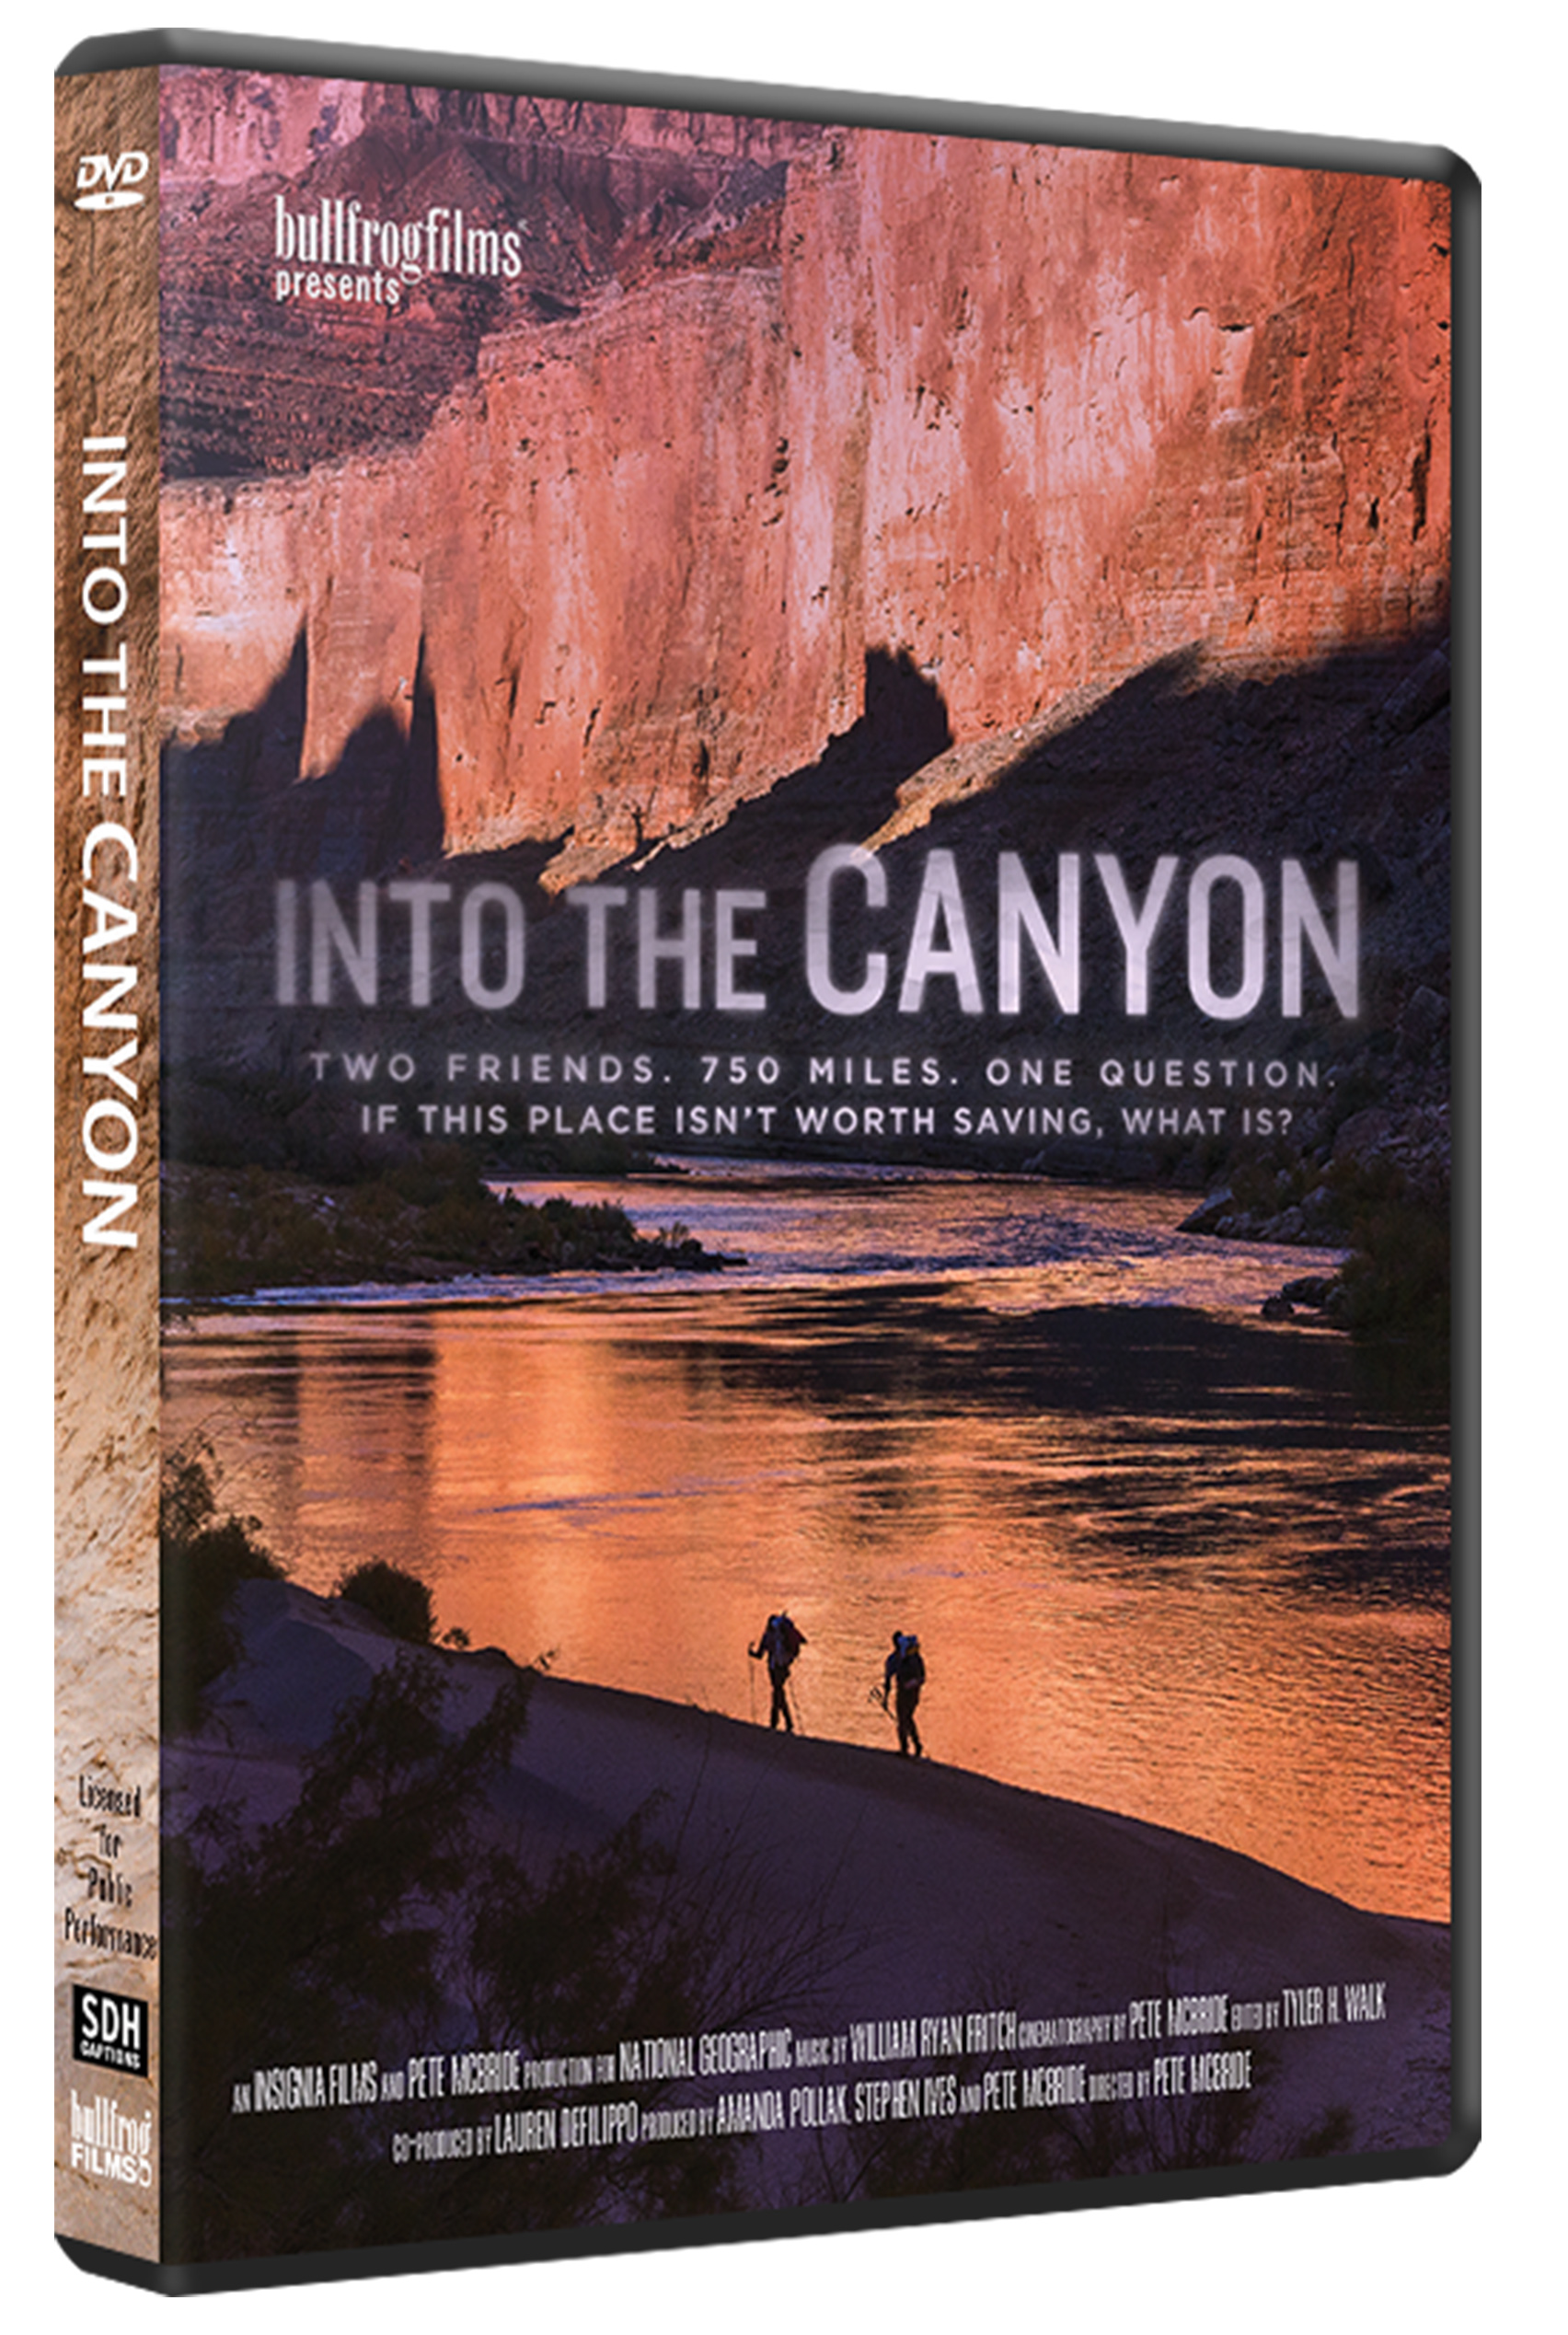 INTO THE CANYON